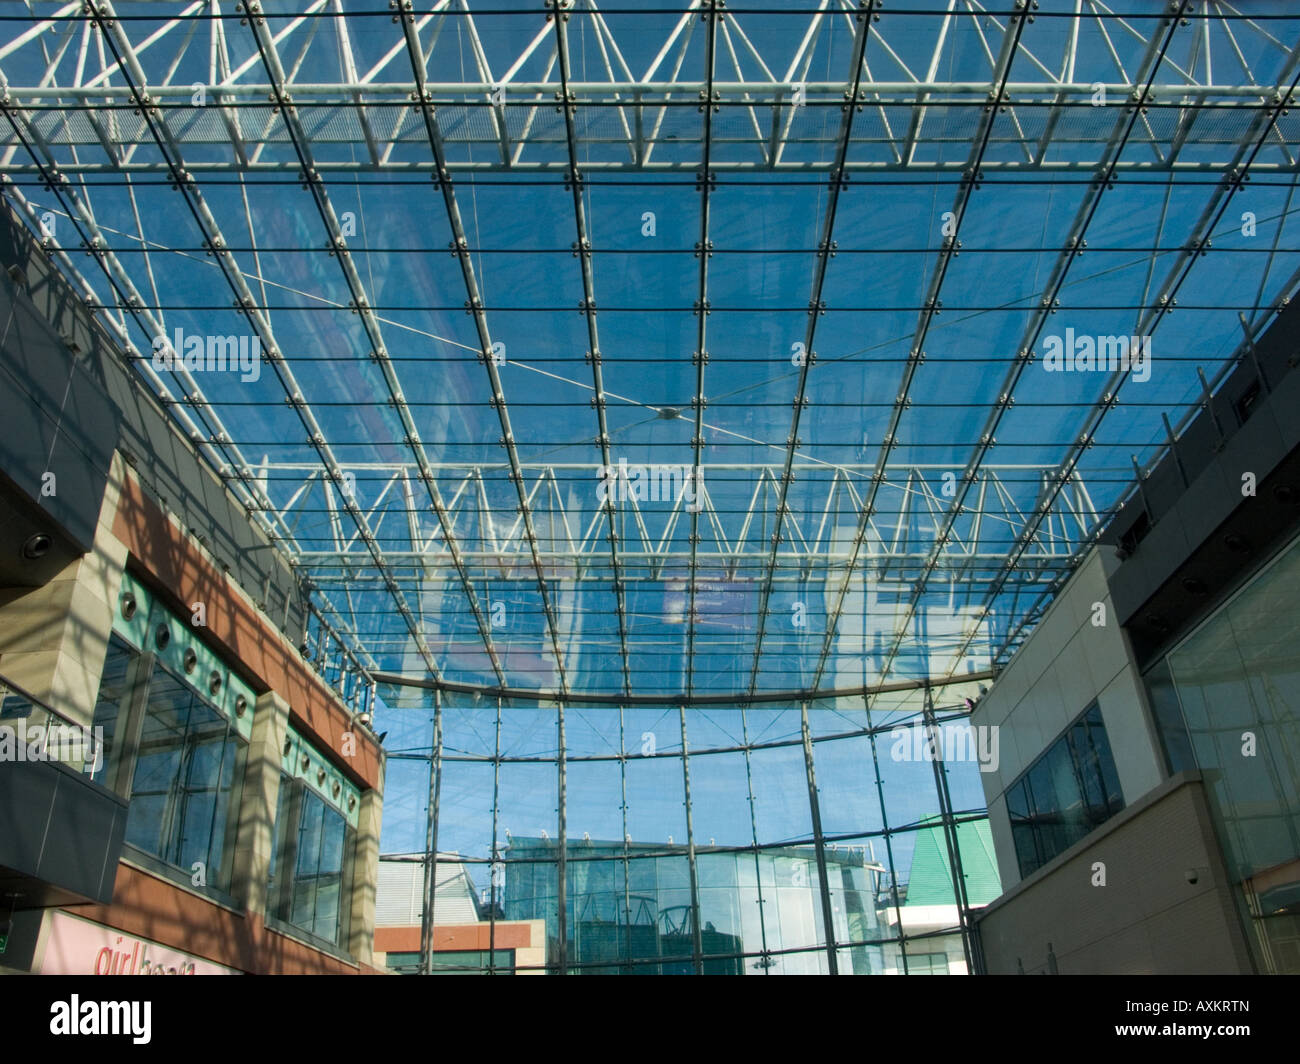 Glass Roof Of The Central Shopping Mall In The Winter Sunshine, Bullring,  Birmingham, West Midlands, England, UK